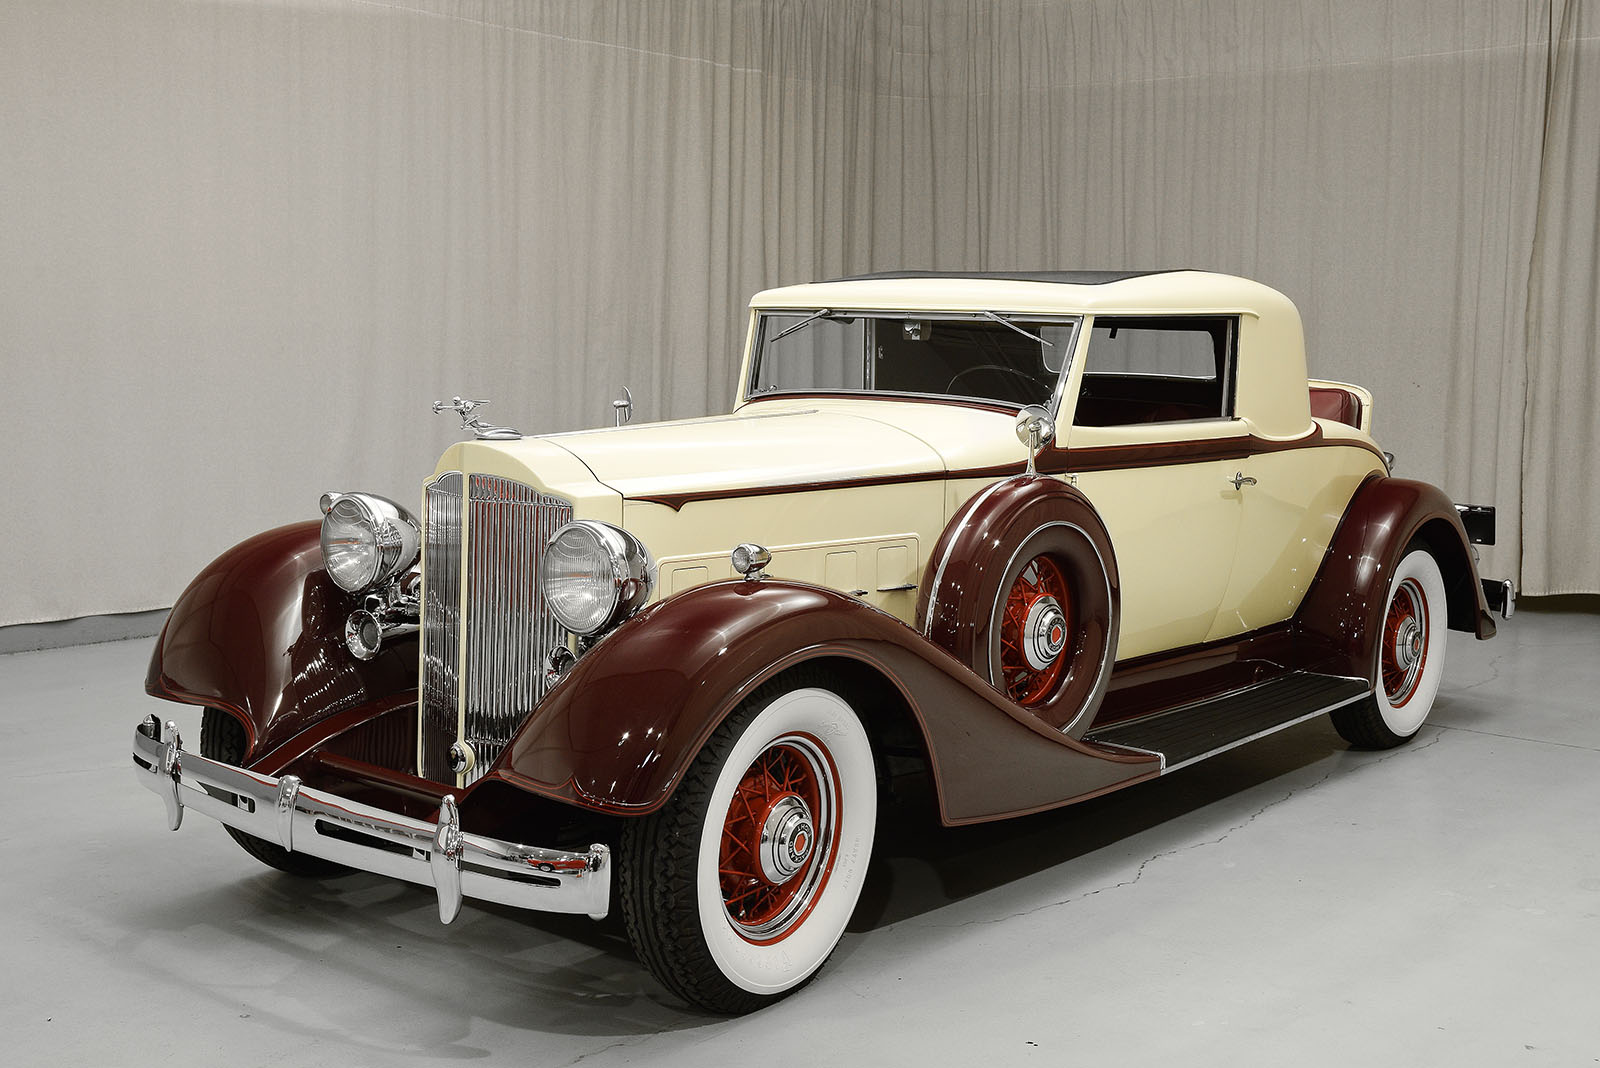 Packard coupe photo - 1